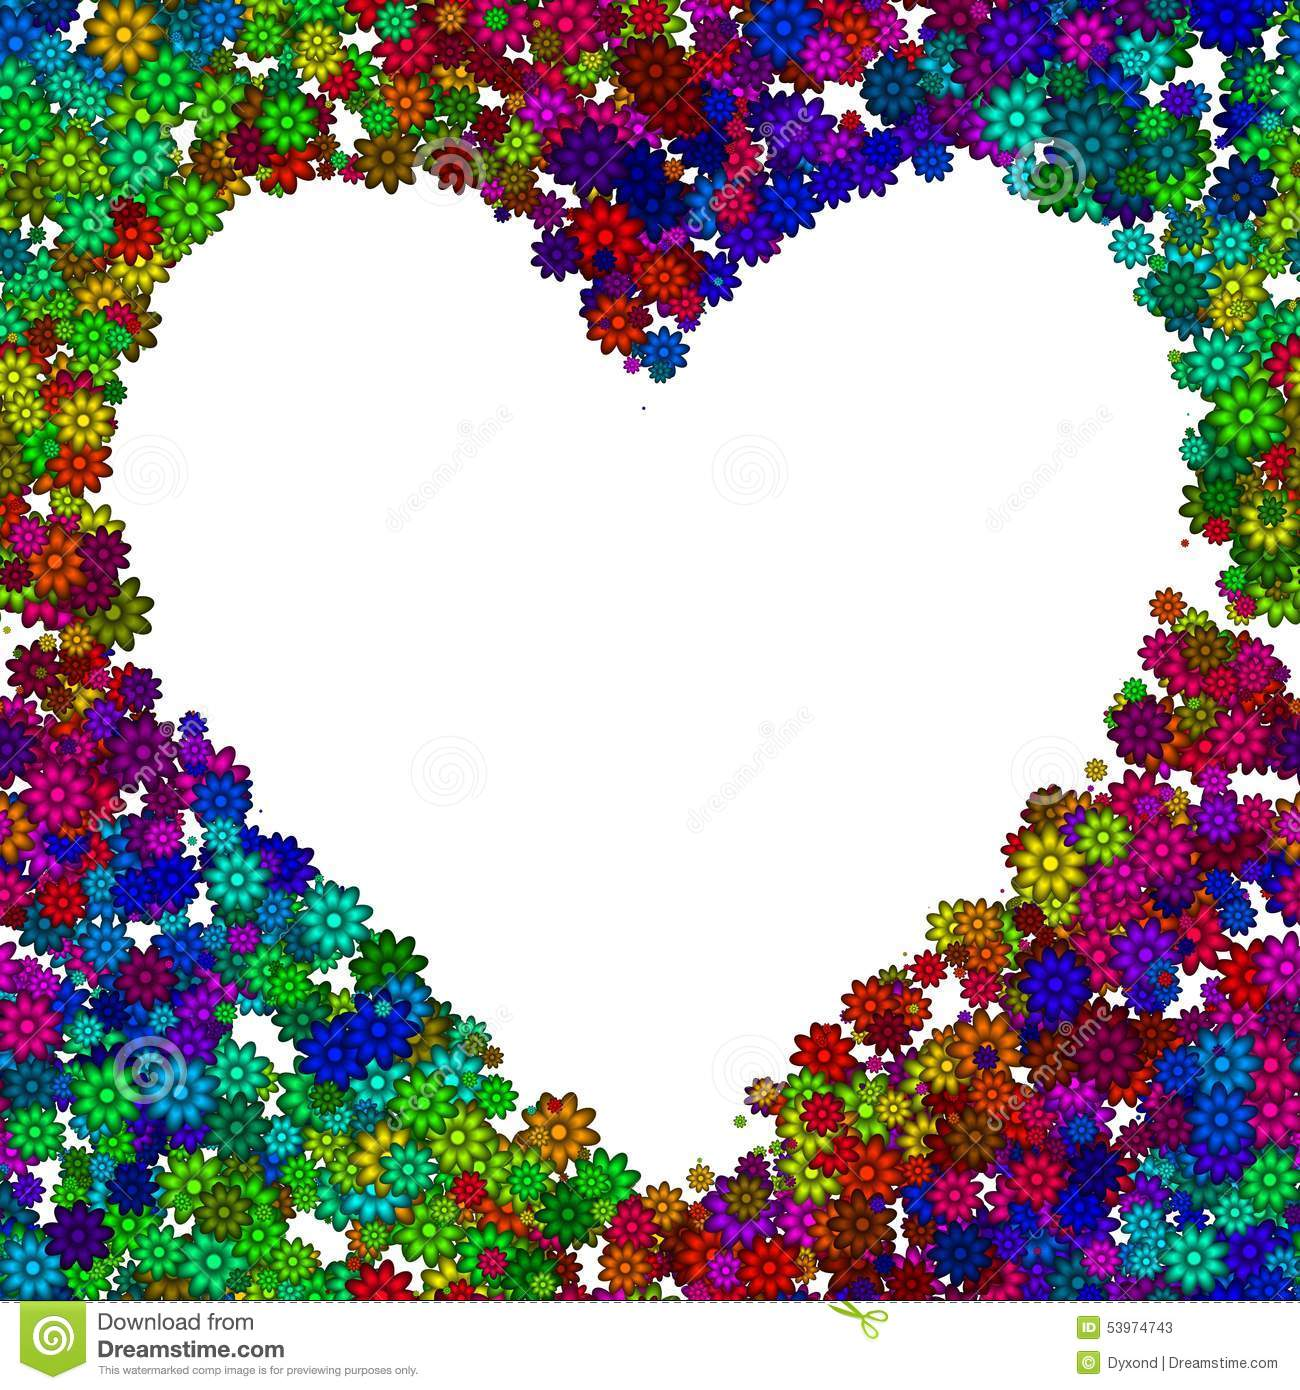 Abstract Heart Frame Made Of Flowers In Rainbow Colors